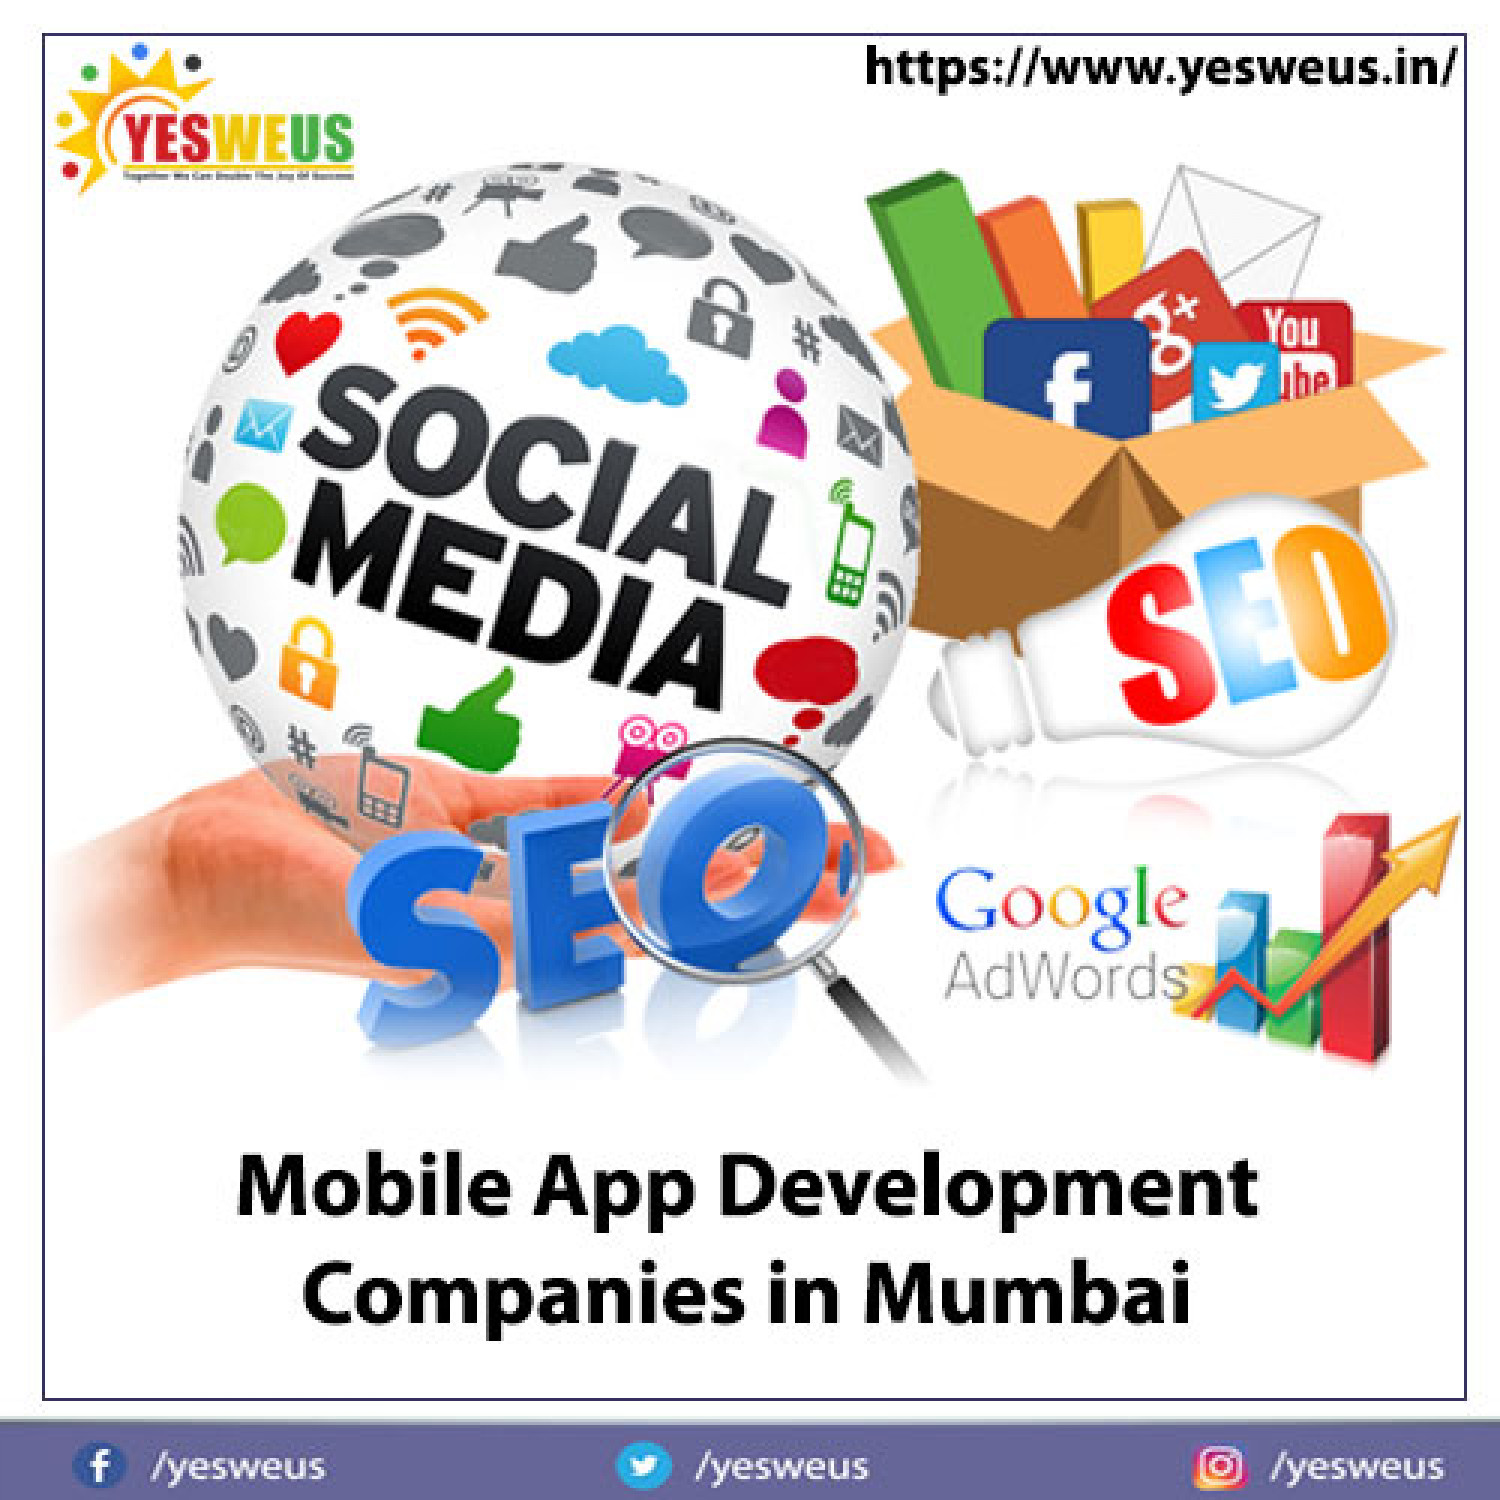 www.yesweus.in is the best mobile app development companies in Mumbai  Infographic